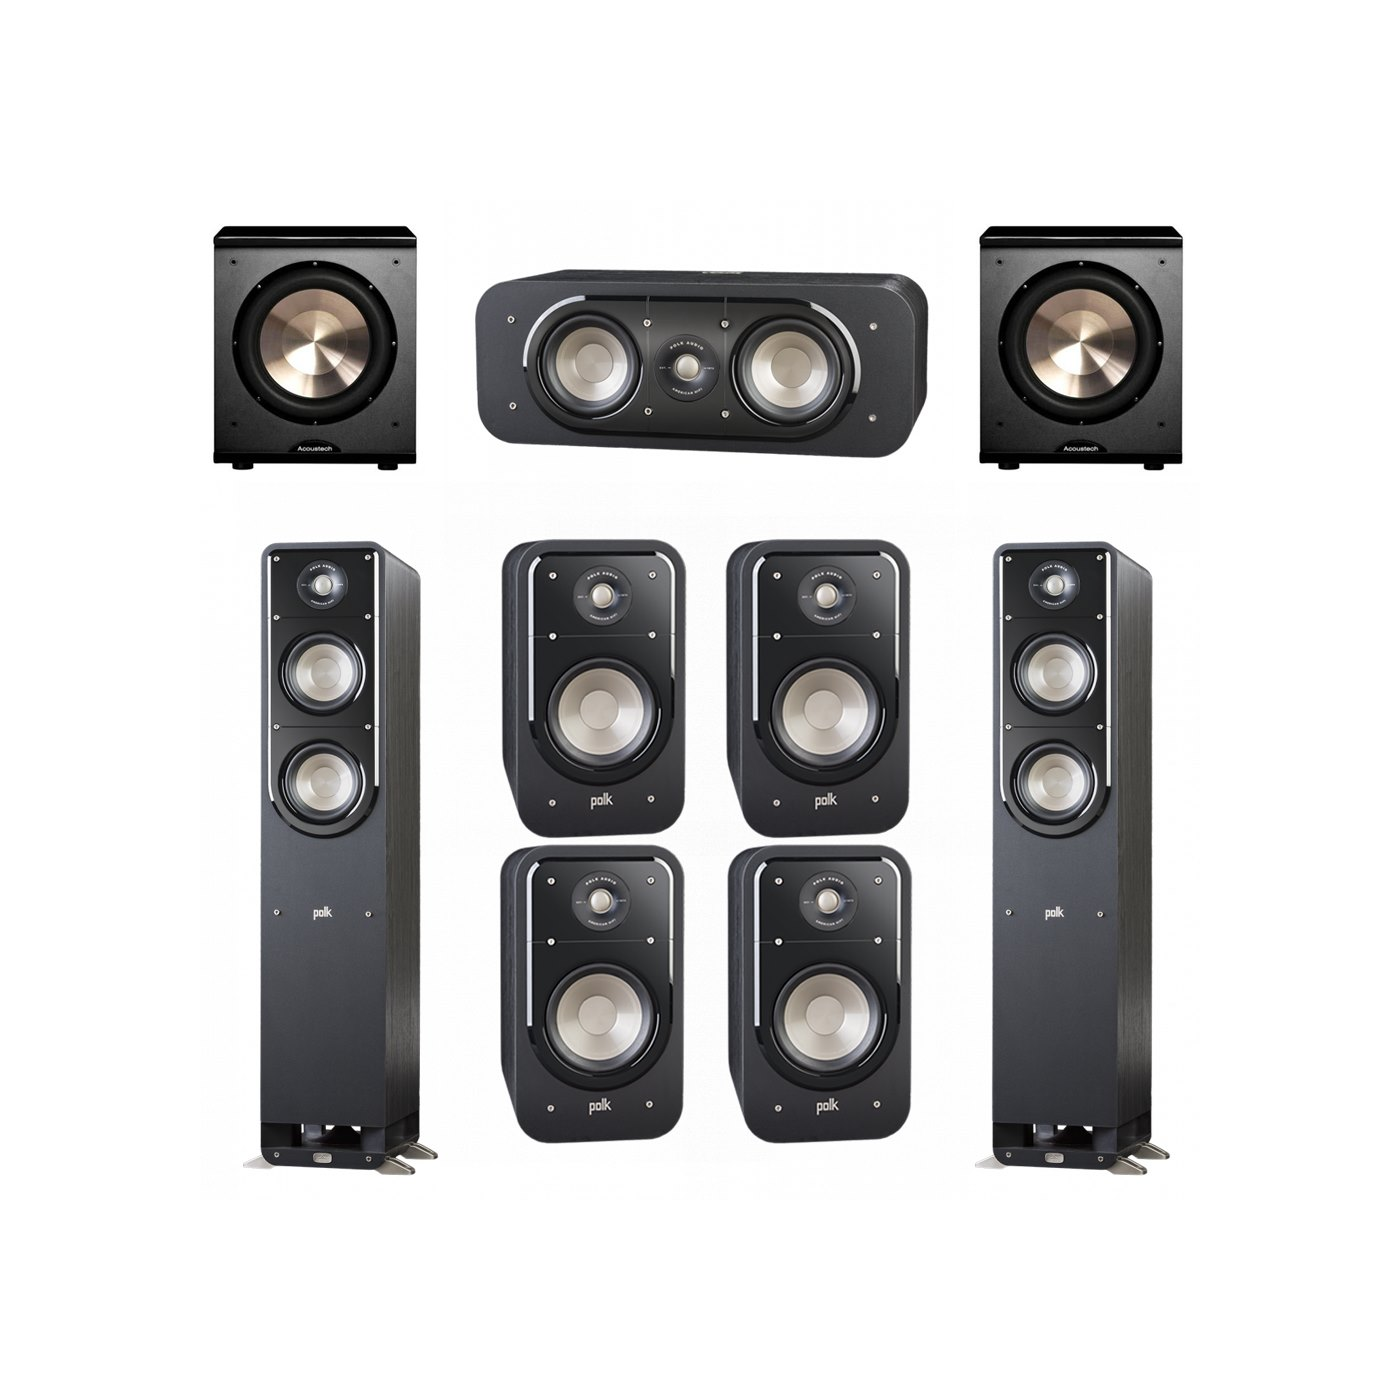 Polk Audio Signature 7.2 System with 2 S50 Tower Speaker, 1 Polk S30 Center Speaker, 4 Polk S20 Bookshelf Speaker, 2 BIC/Acoustech Platinum Series PL-200 Subwoofer